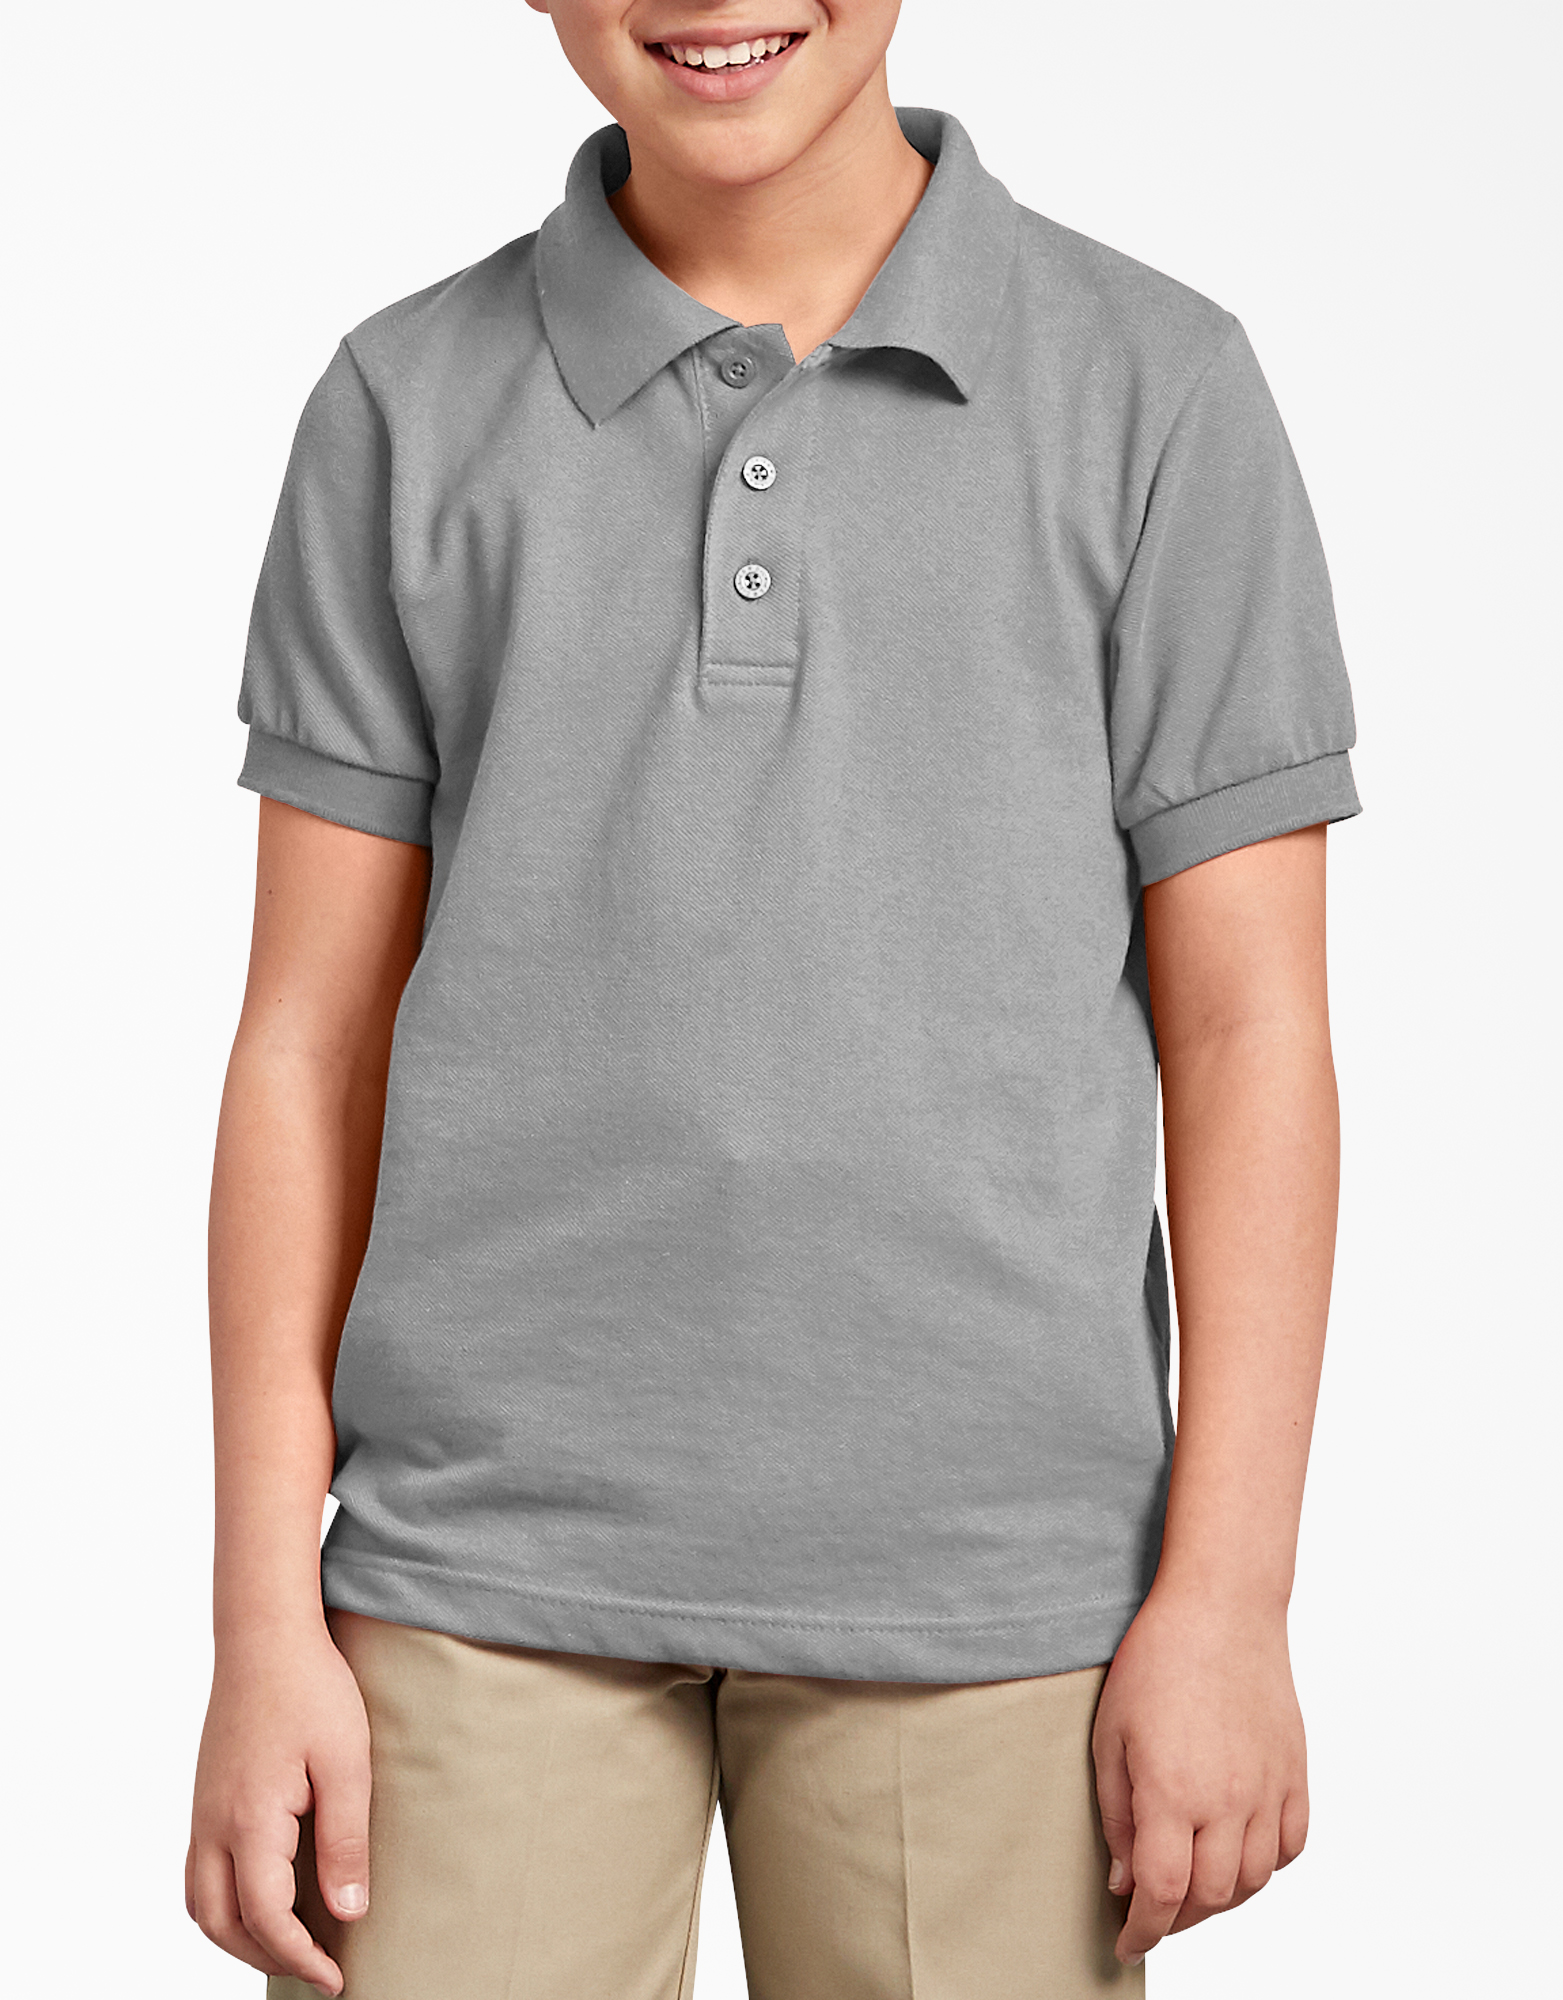 Kids' Short Sleeve Pique Polo Shirt, 4-20 - Heather Gray (HG)